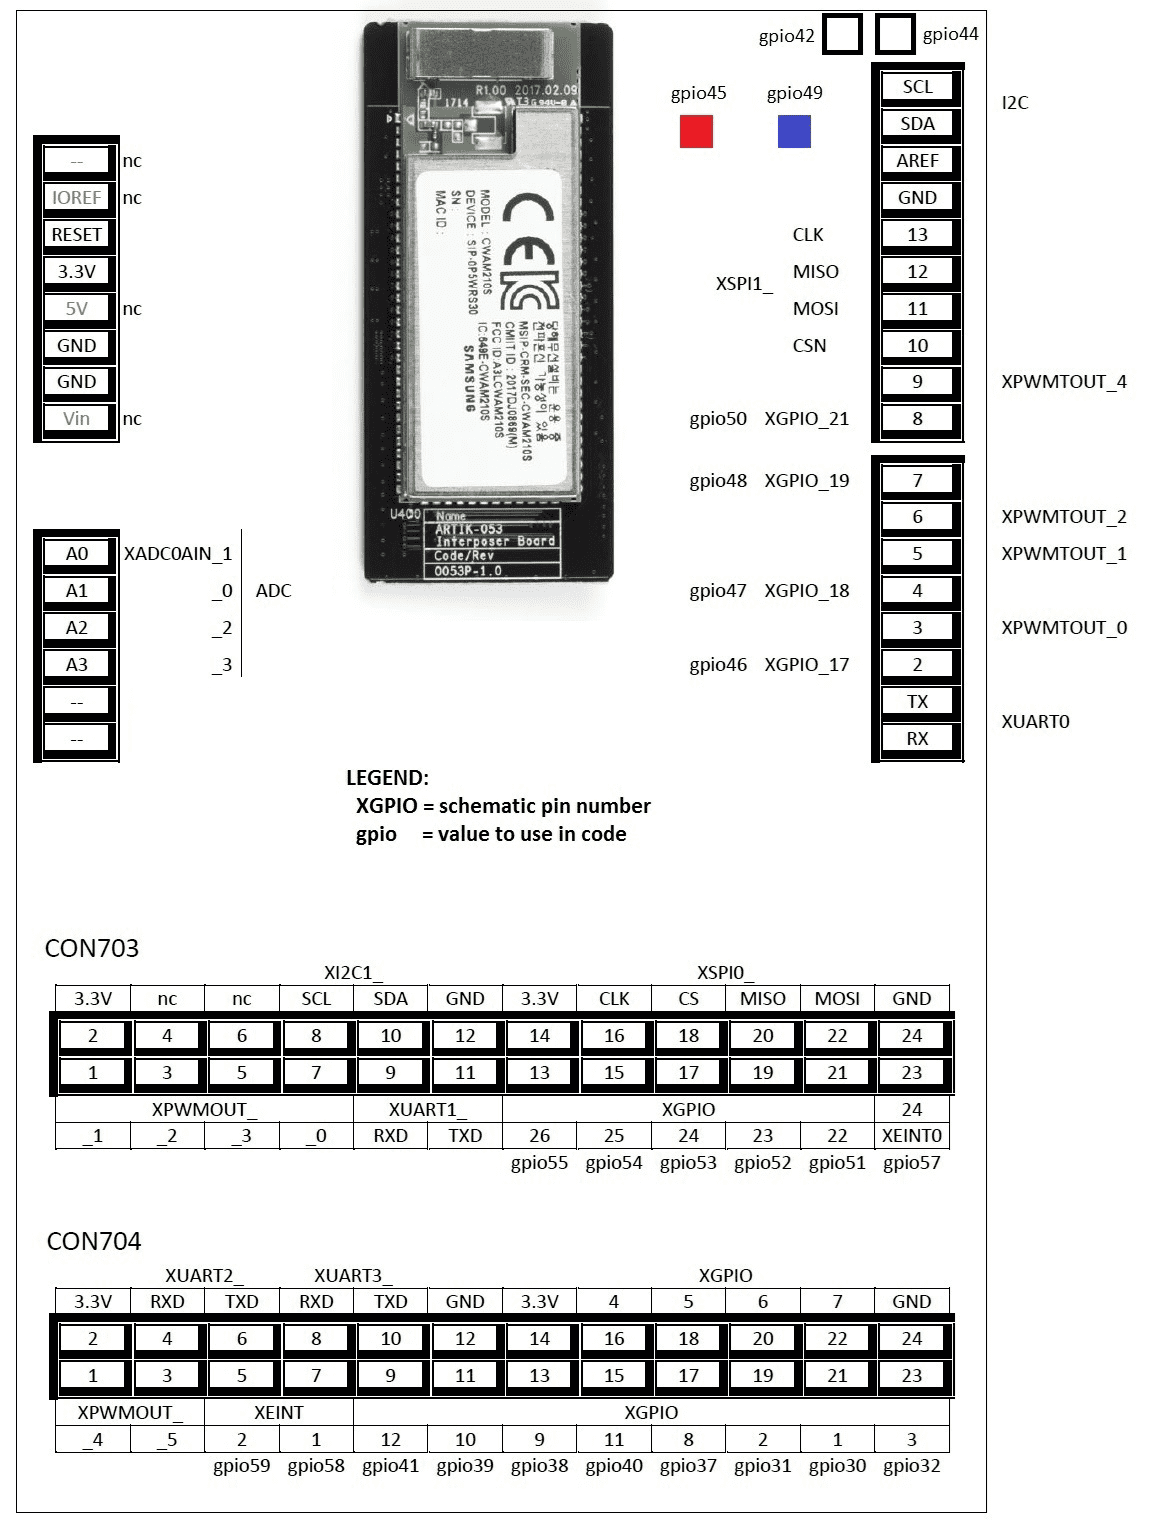 Figure 20 Artik 053 Board Diagram